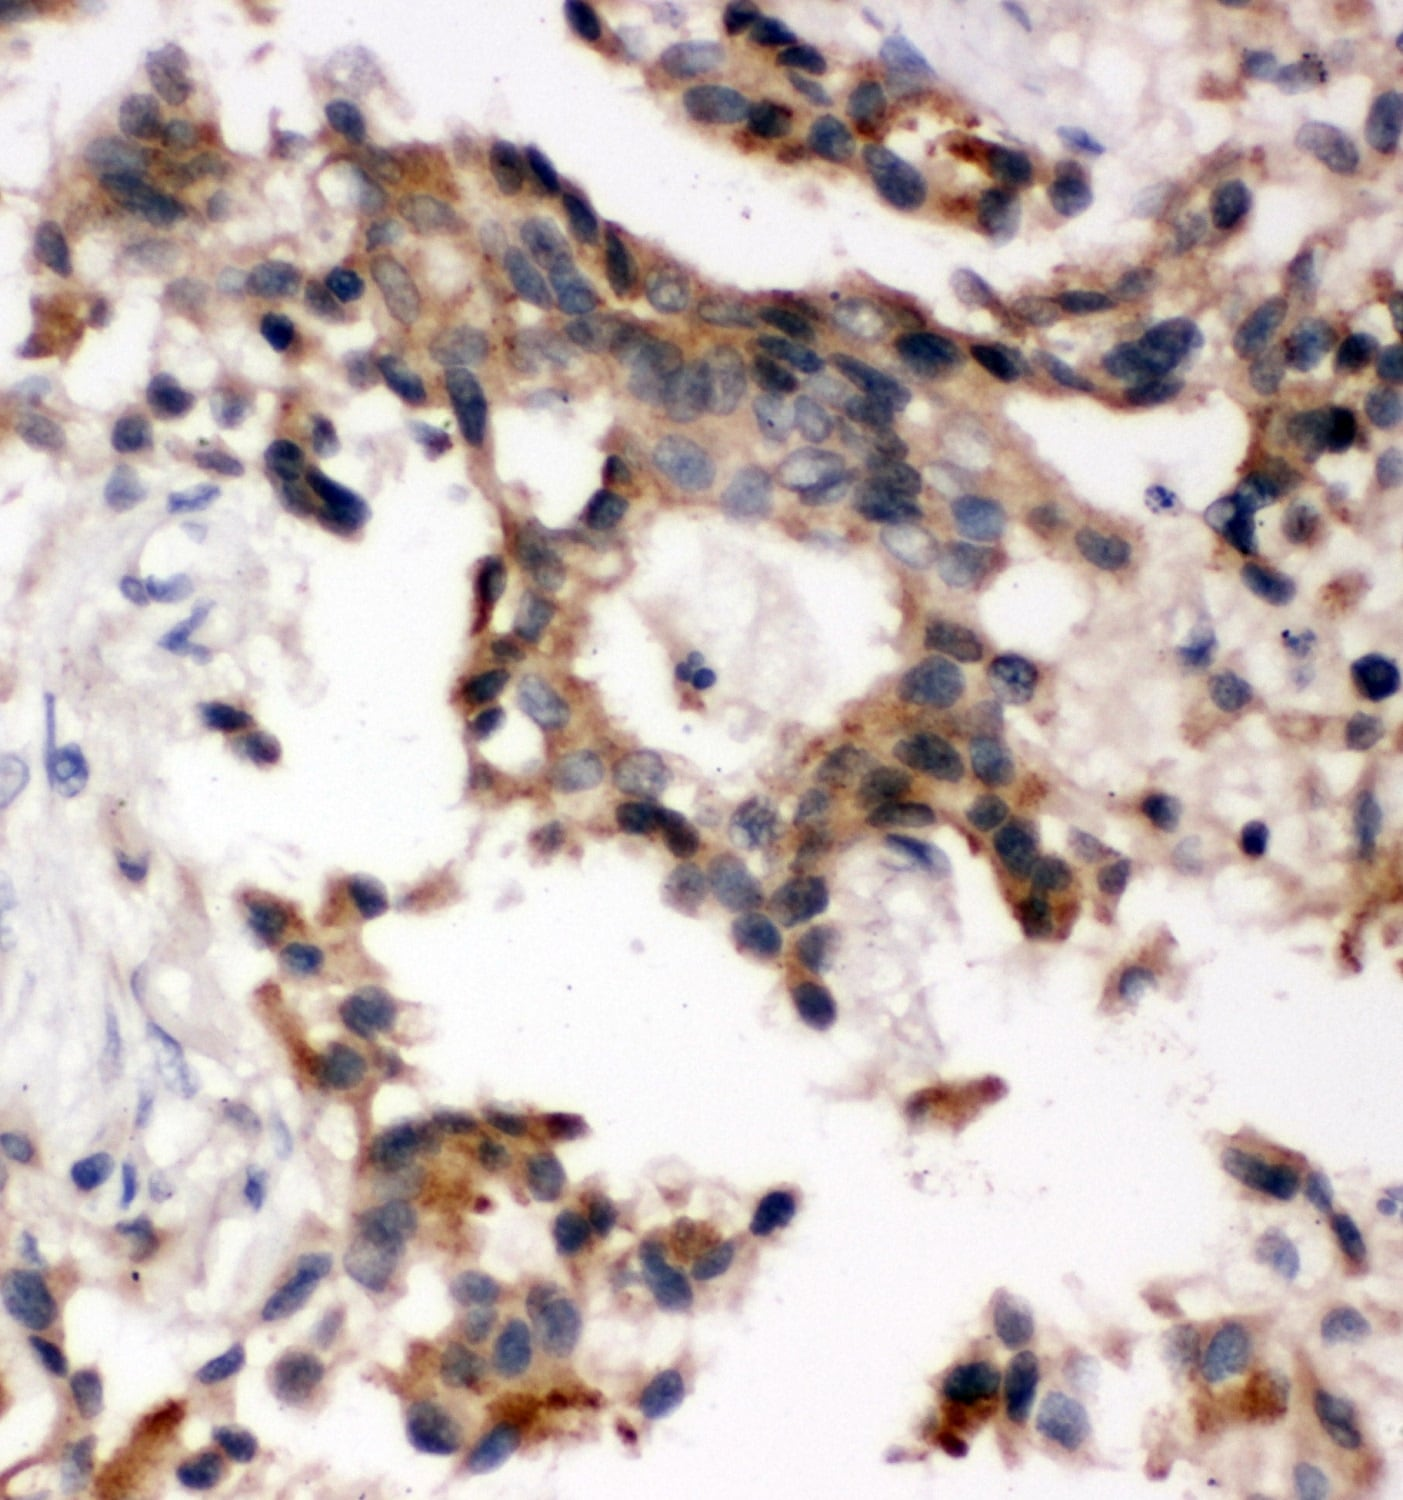 Immunohistochemistry (Formalin/PFA-fixed paraffin-embedded sections) - Anti-Abi-1 antibody (ab65828)